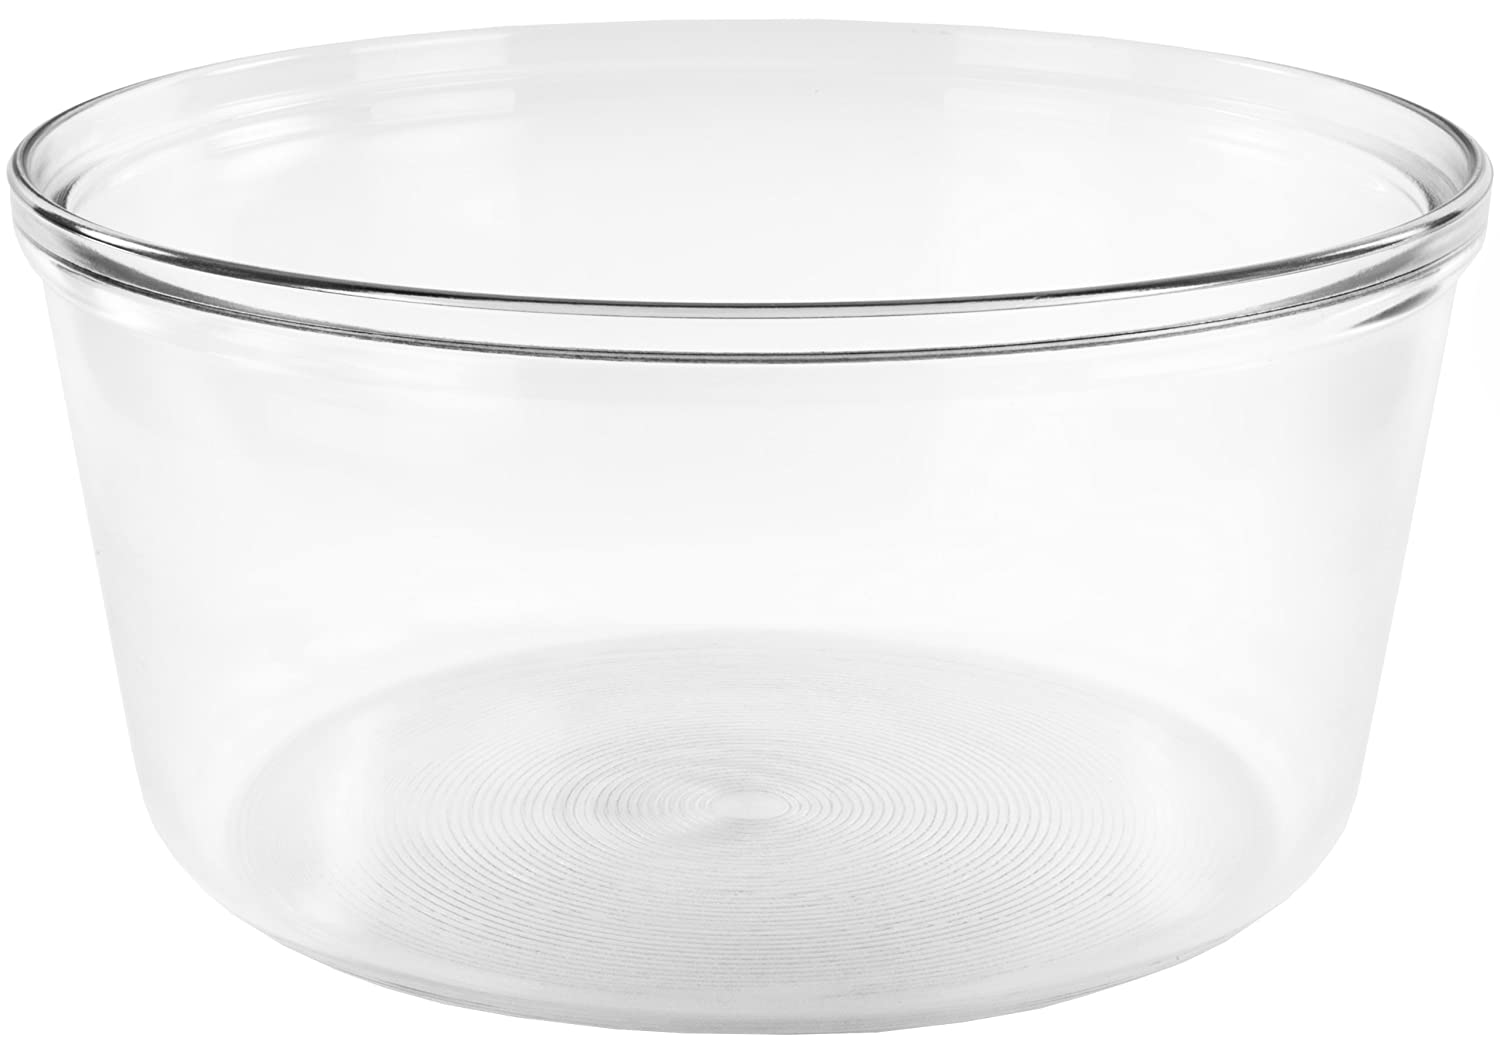 Andrew James Halogen Oven Glass Bowl | 33.5cm x 33.5cm x 17cm Replacement Spare Bowl 5060146061025